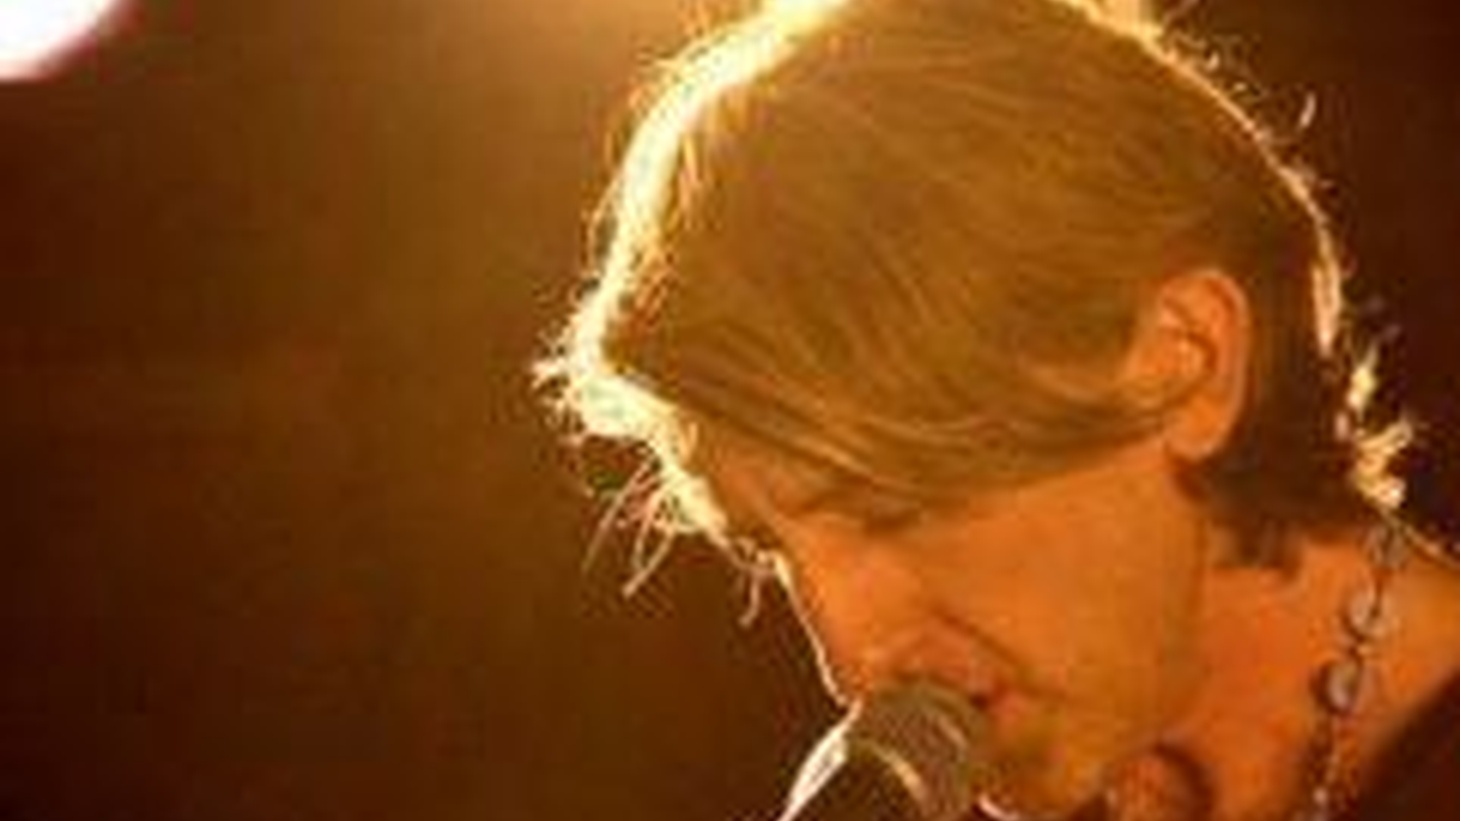 Bristol's Merz performs his beautiful songs solo on Morning Becomes Eclectic at 11:15am.